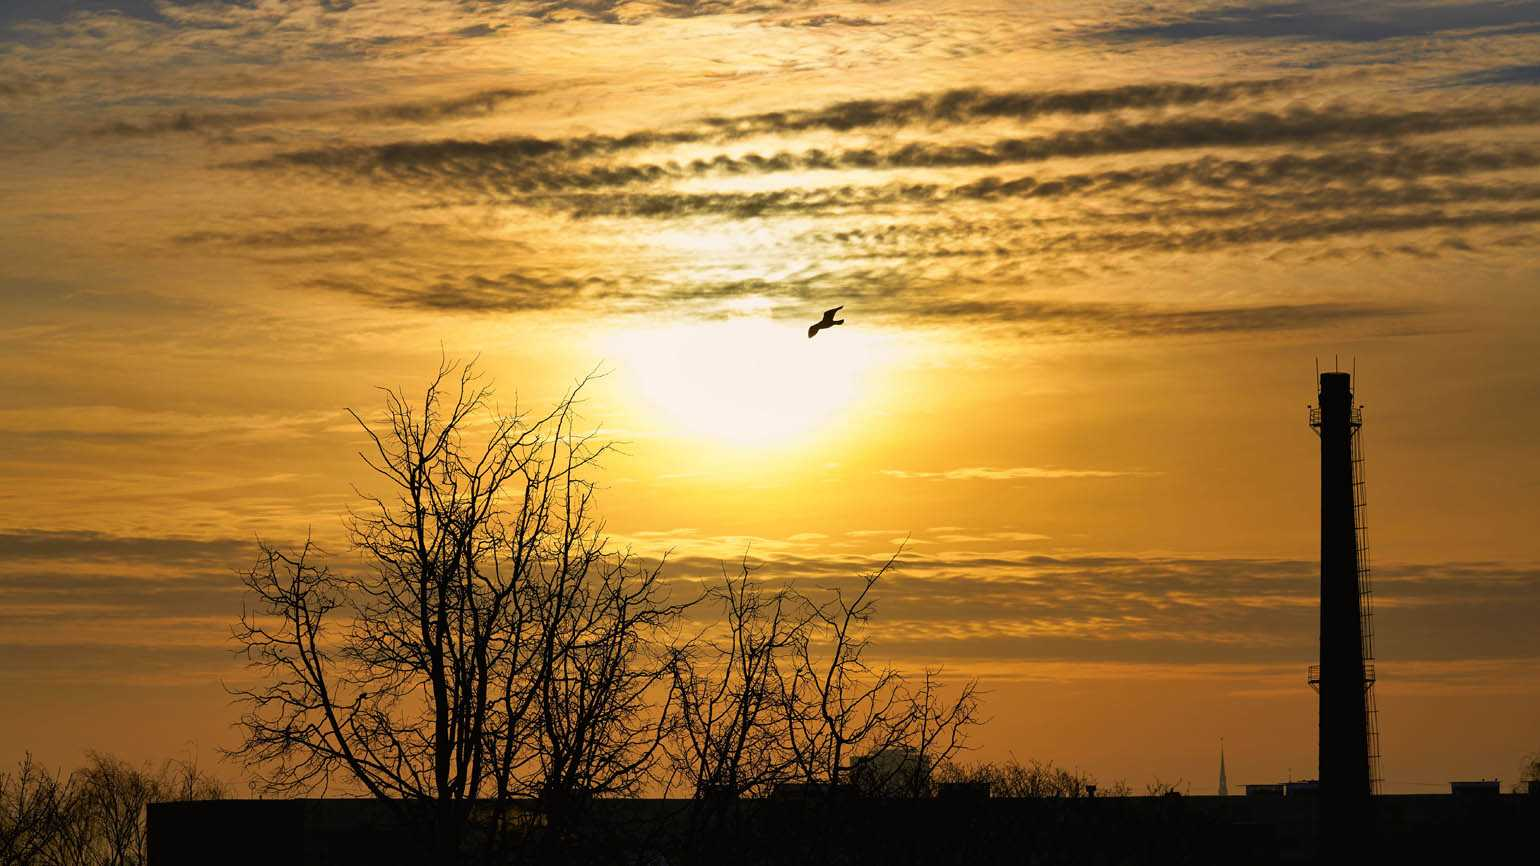 A lone bird flying in the sky.